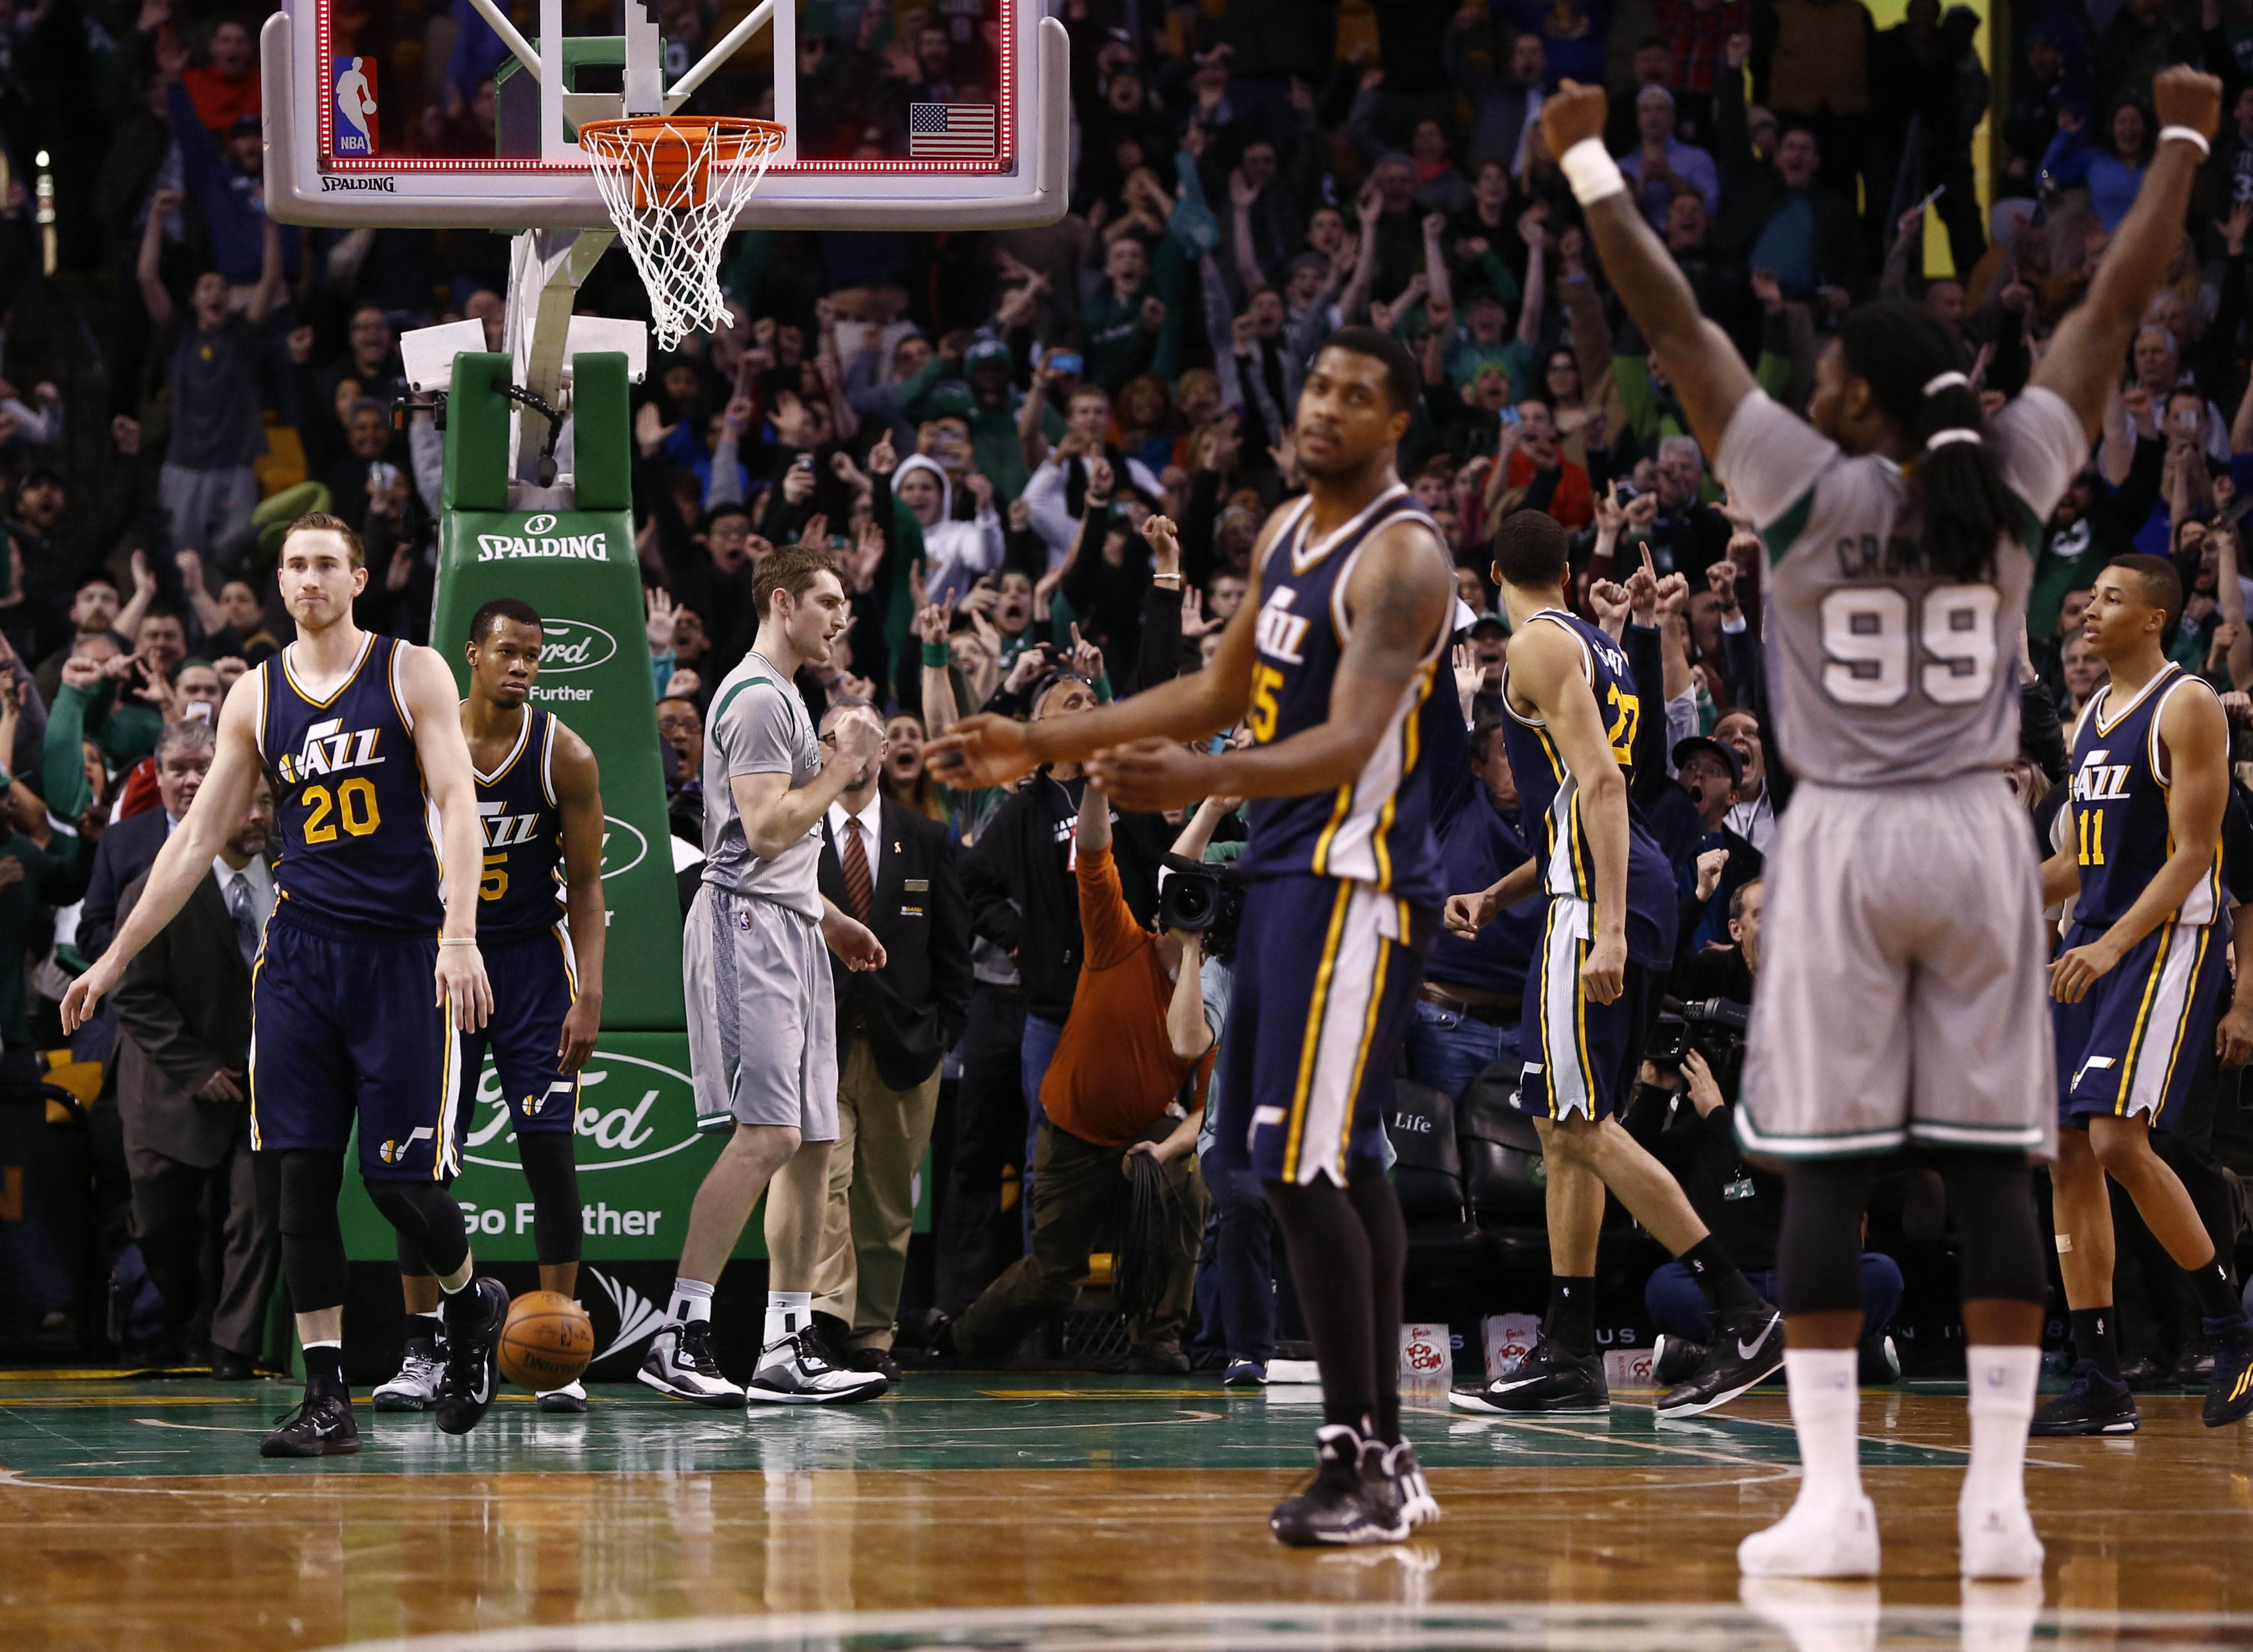 Tyler Zeller's game-winning buzzer-beating layup pushes Celtics past Jazz